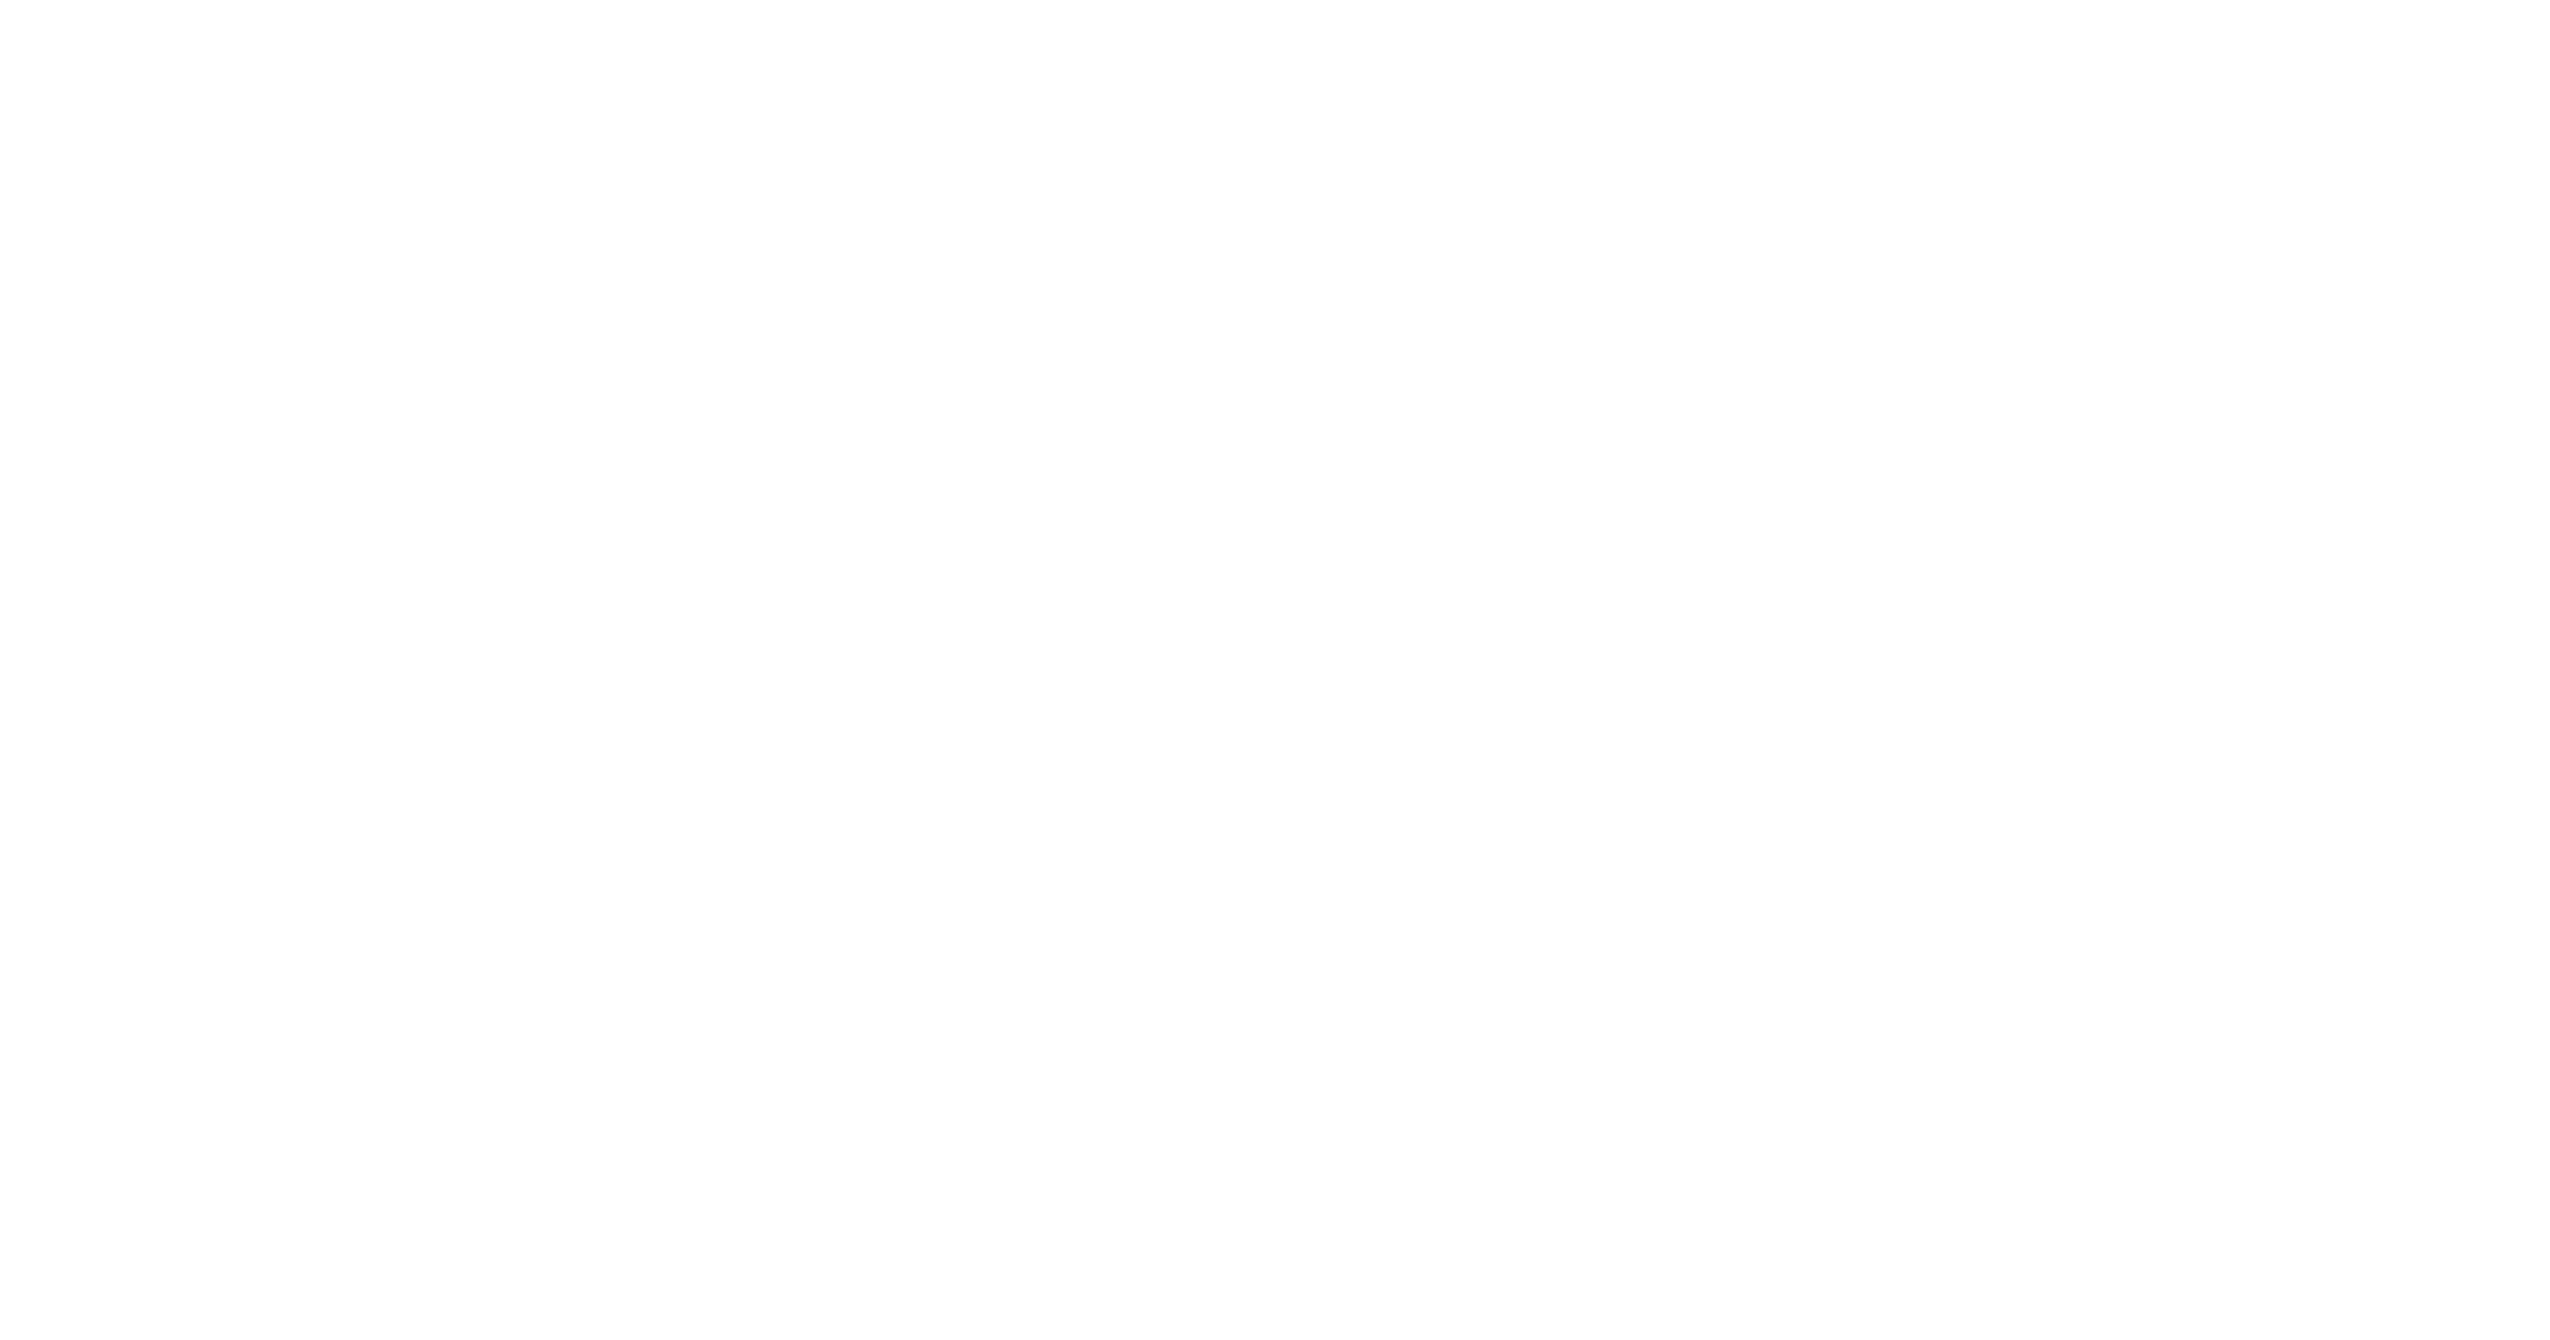 THRIVE! Host Home Network